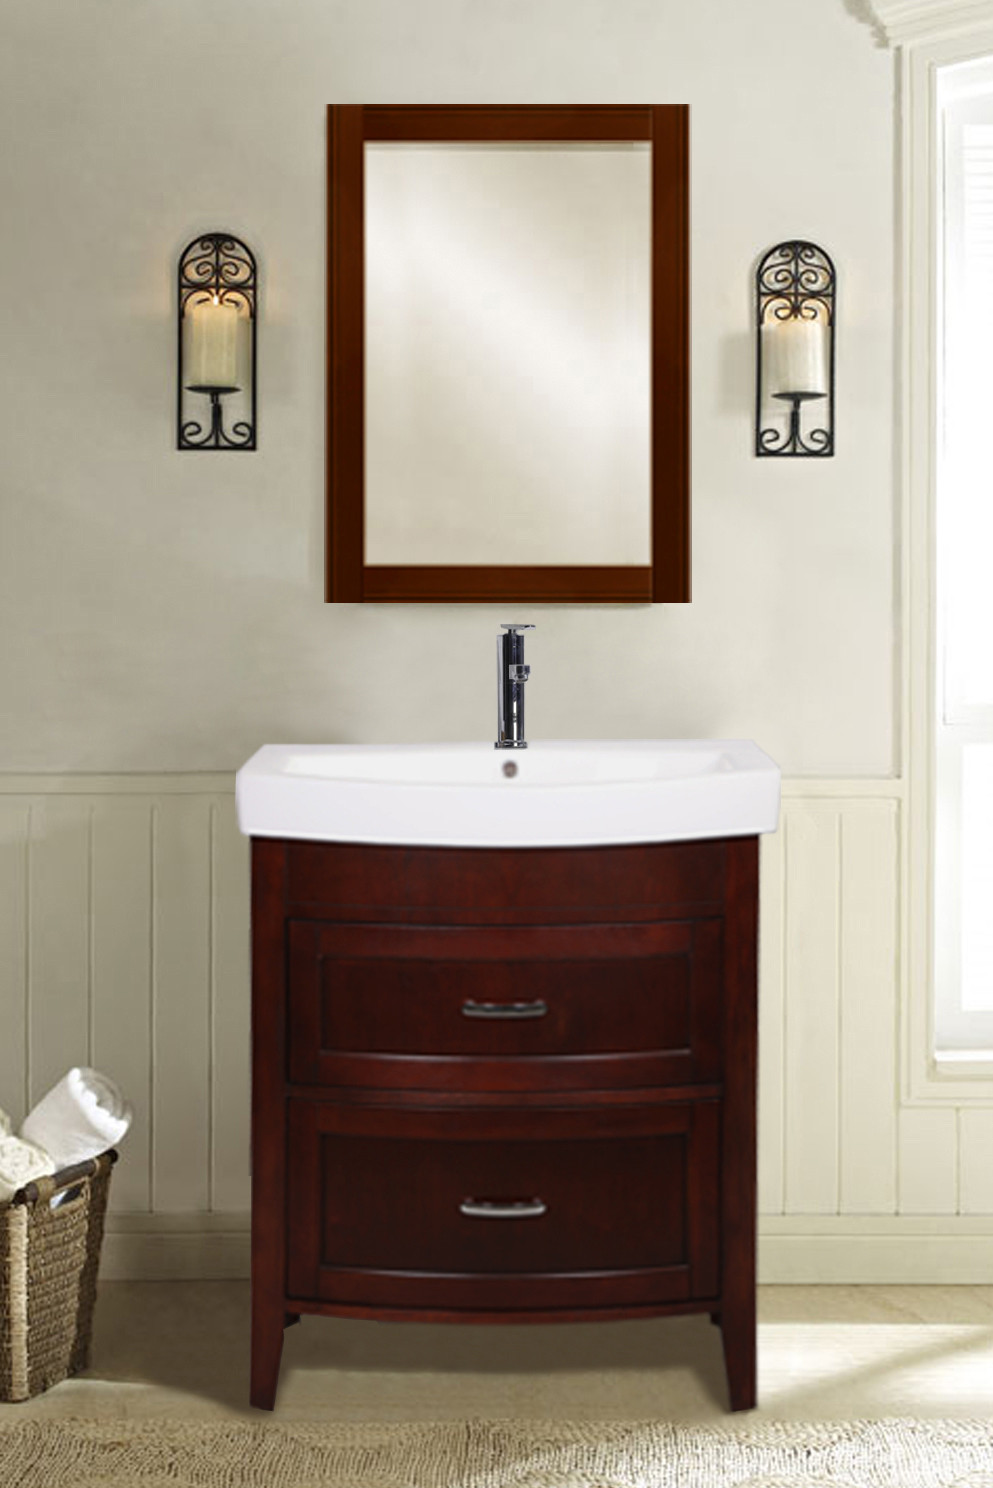 Empire industries a2402b 24 inch freestanding vanity with for Empire bathrooms